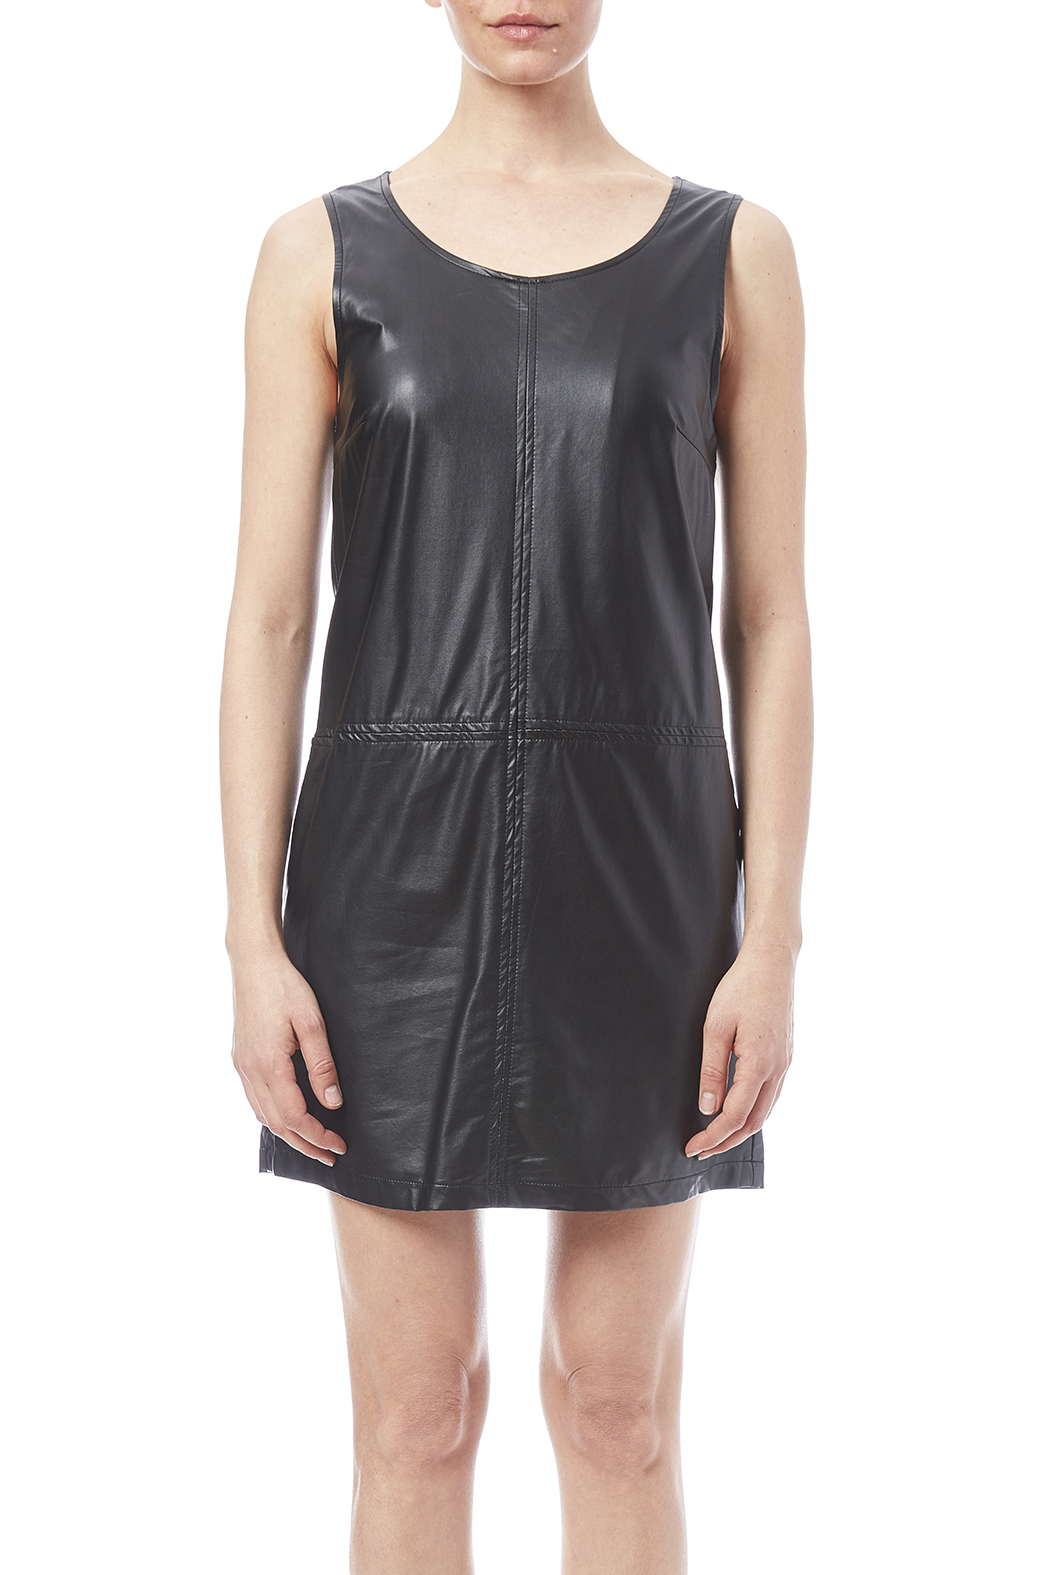 LoveRiche Black Faux Leather Dress - Side Cropped Image